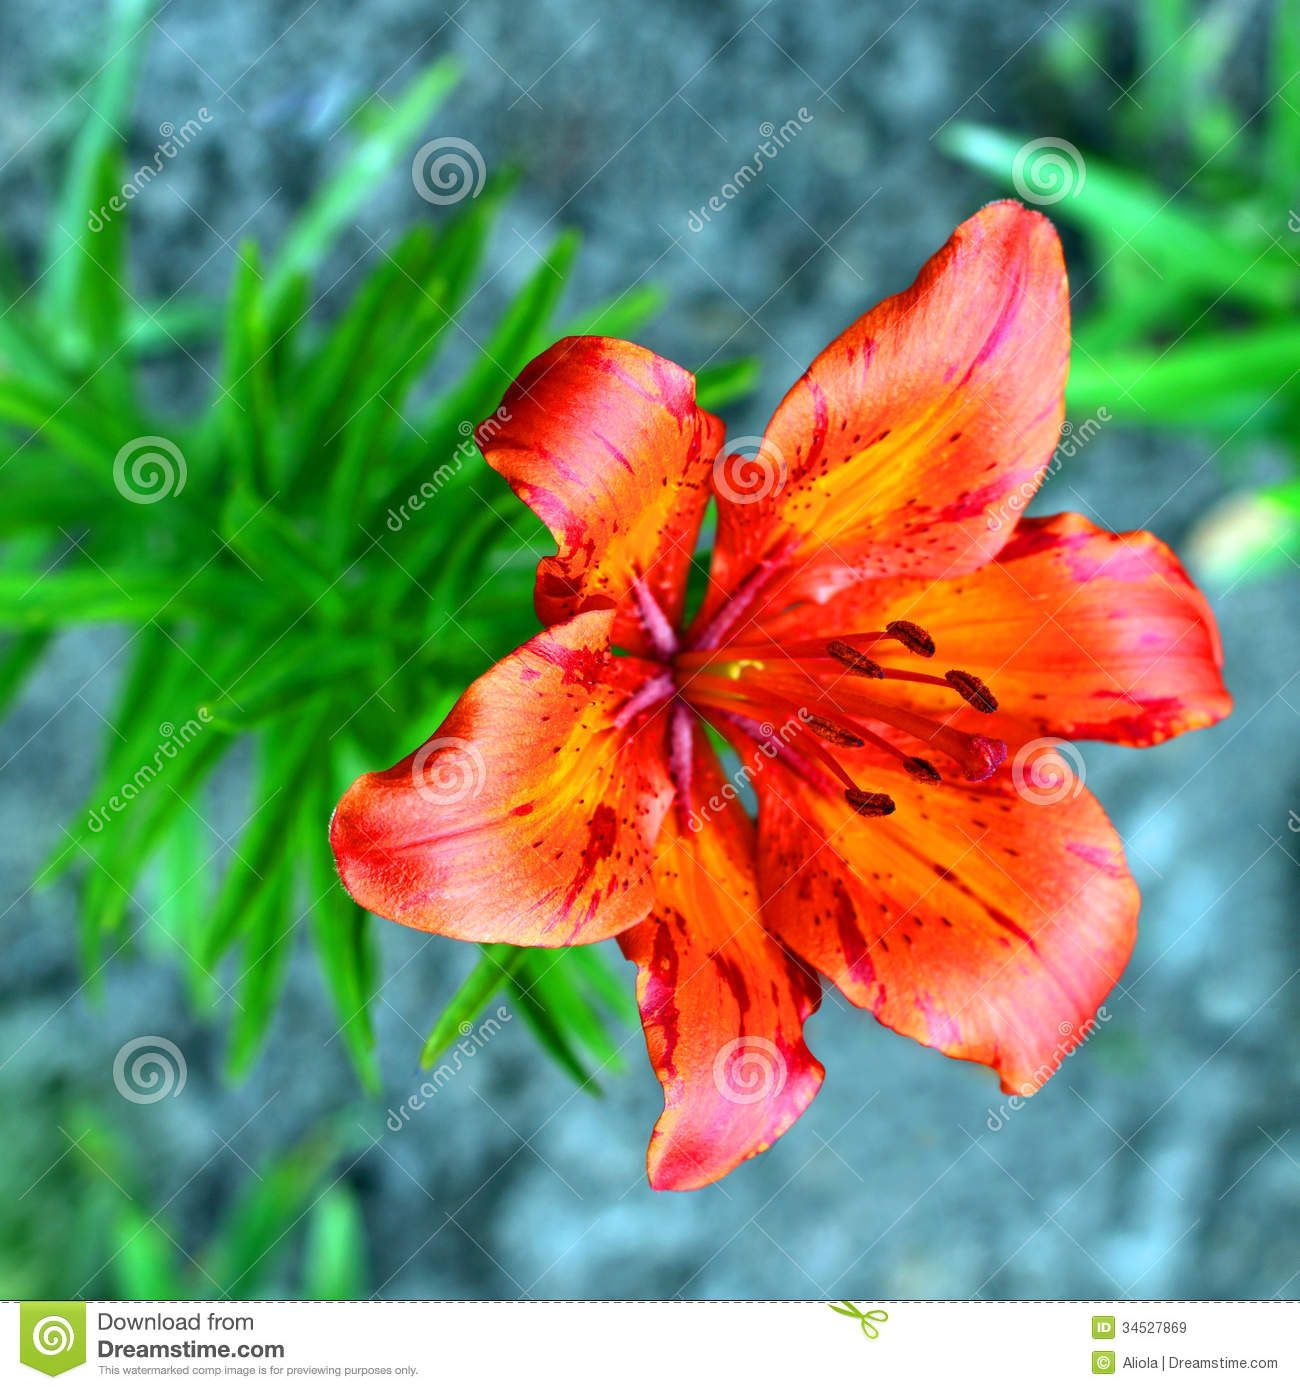 Tiger lily flowers stock flower images pinterest tiger lily tiger lily flowers izmirmasajfo